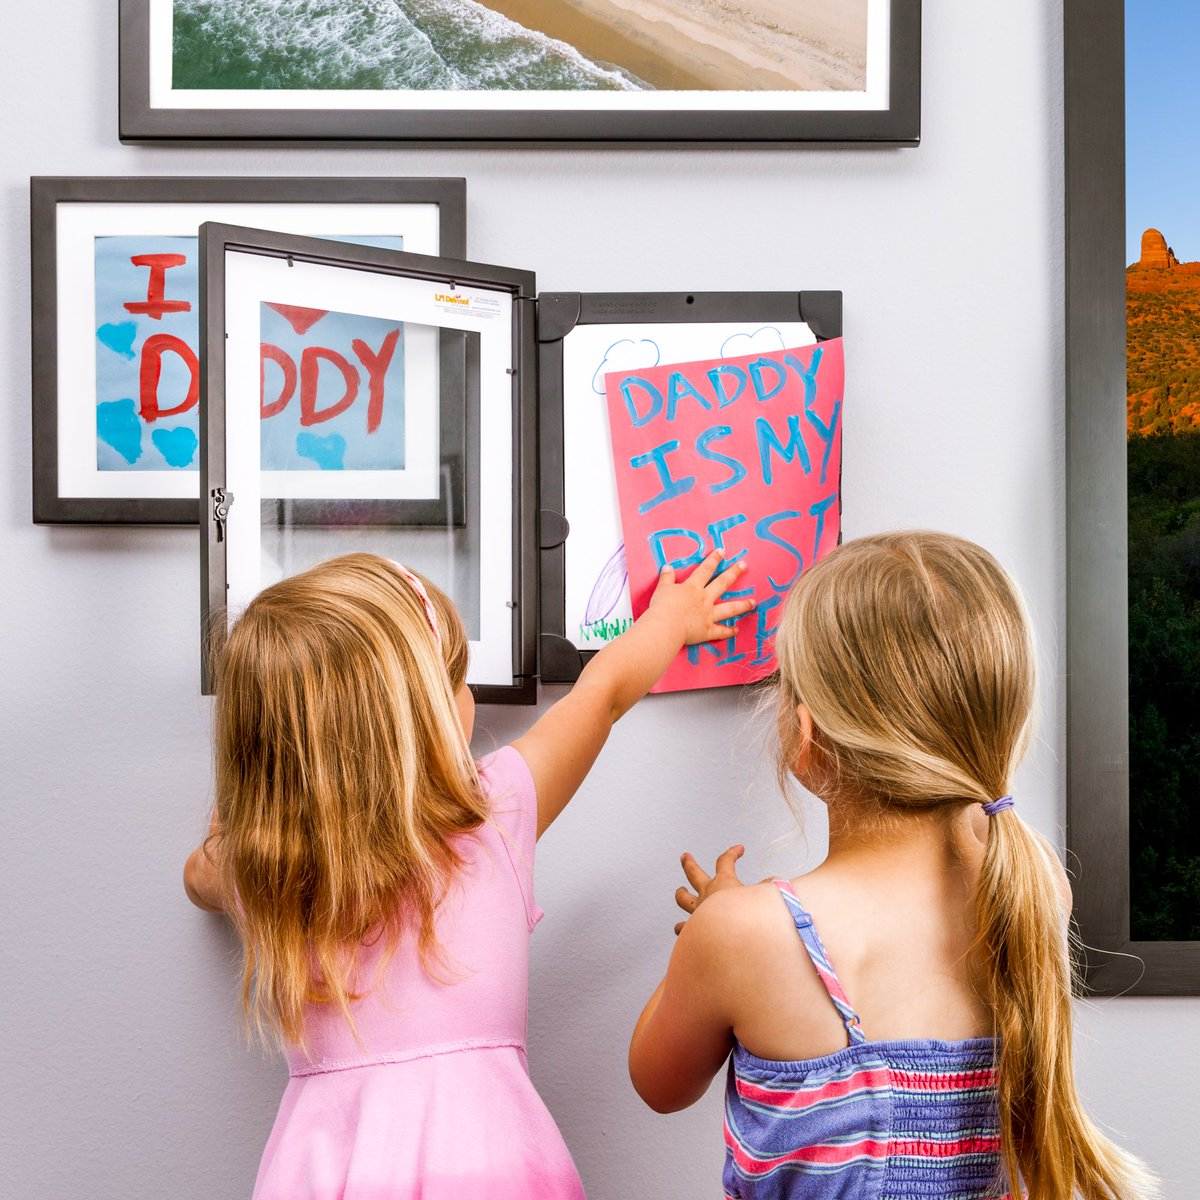 up to 50 photos or kidsart in one frame for fathersdaygift 20 off full priced frames at httpdynamicframescom with code dad2017pictwittercom - Dynamic Frames